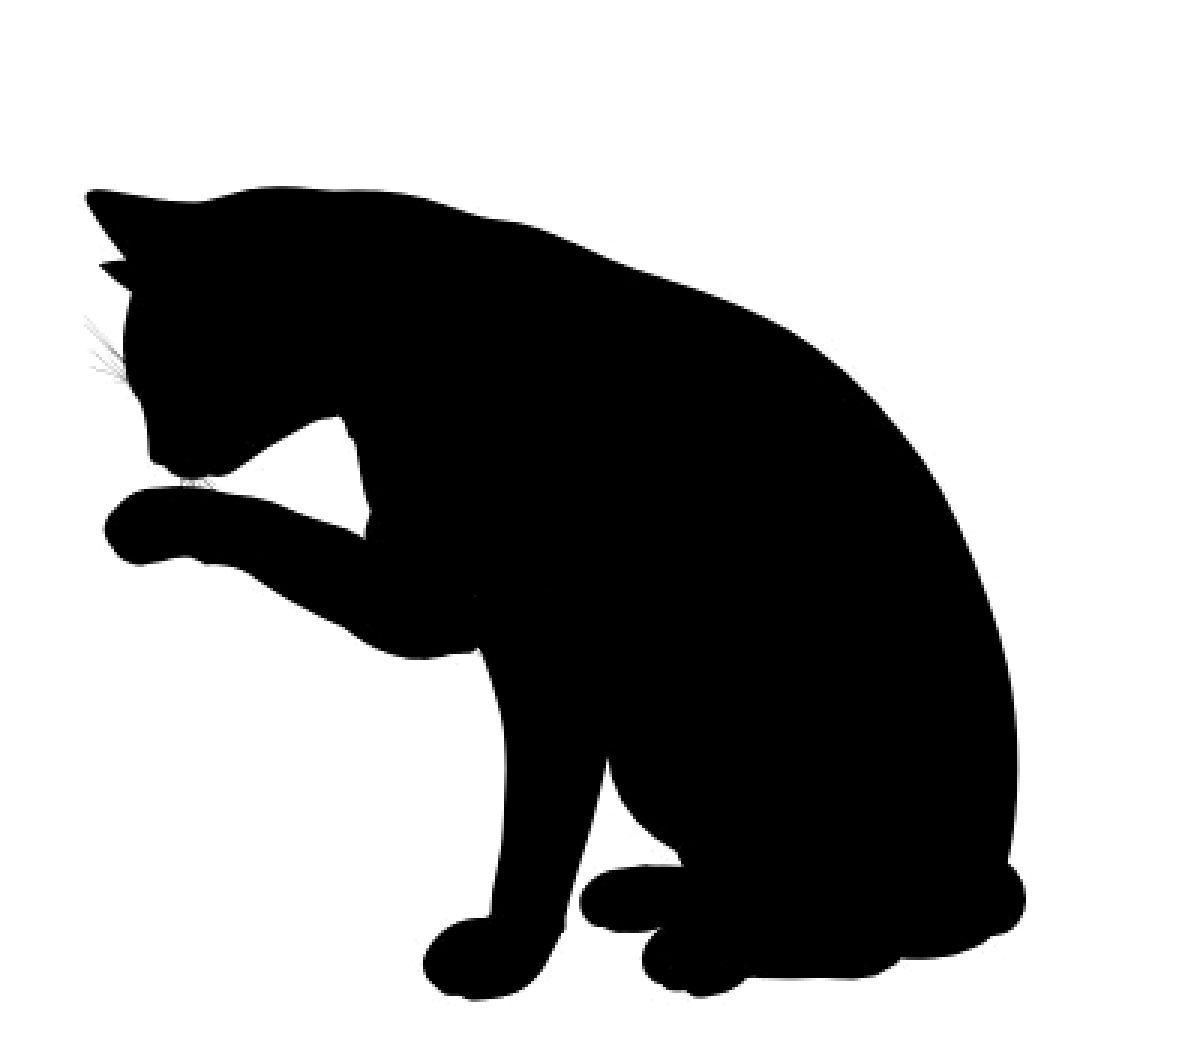 cat silhouette vector at getdrawings com free for personal use cat rh getdrawings com dog cat silhouette vector free black cat silhouette vector